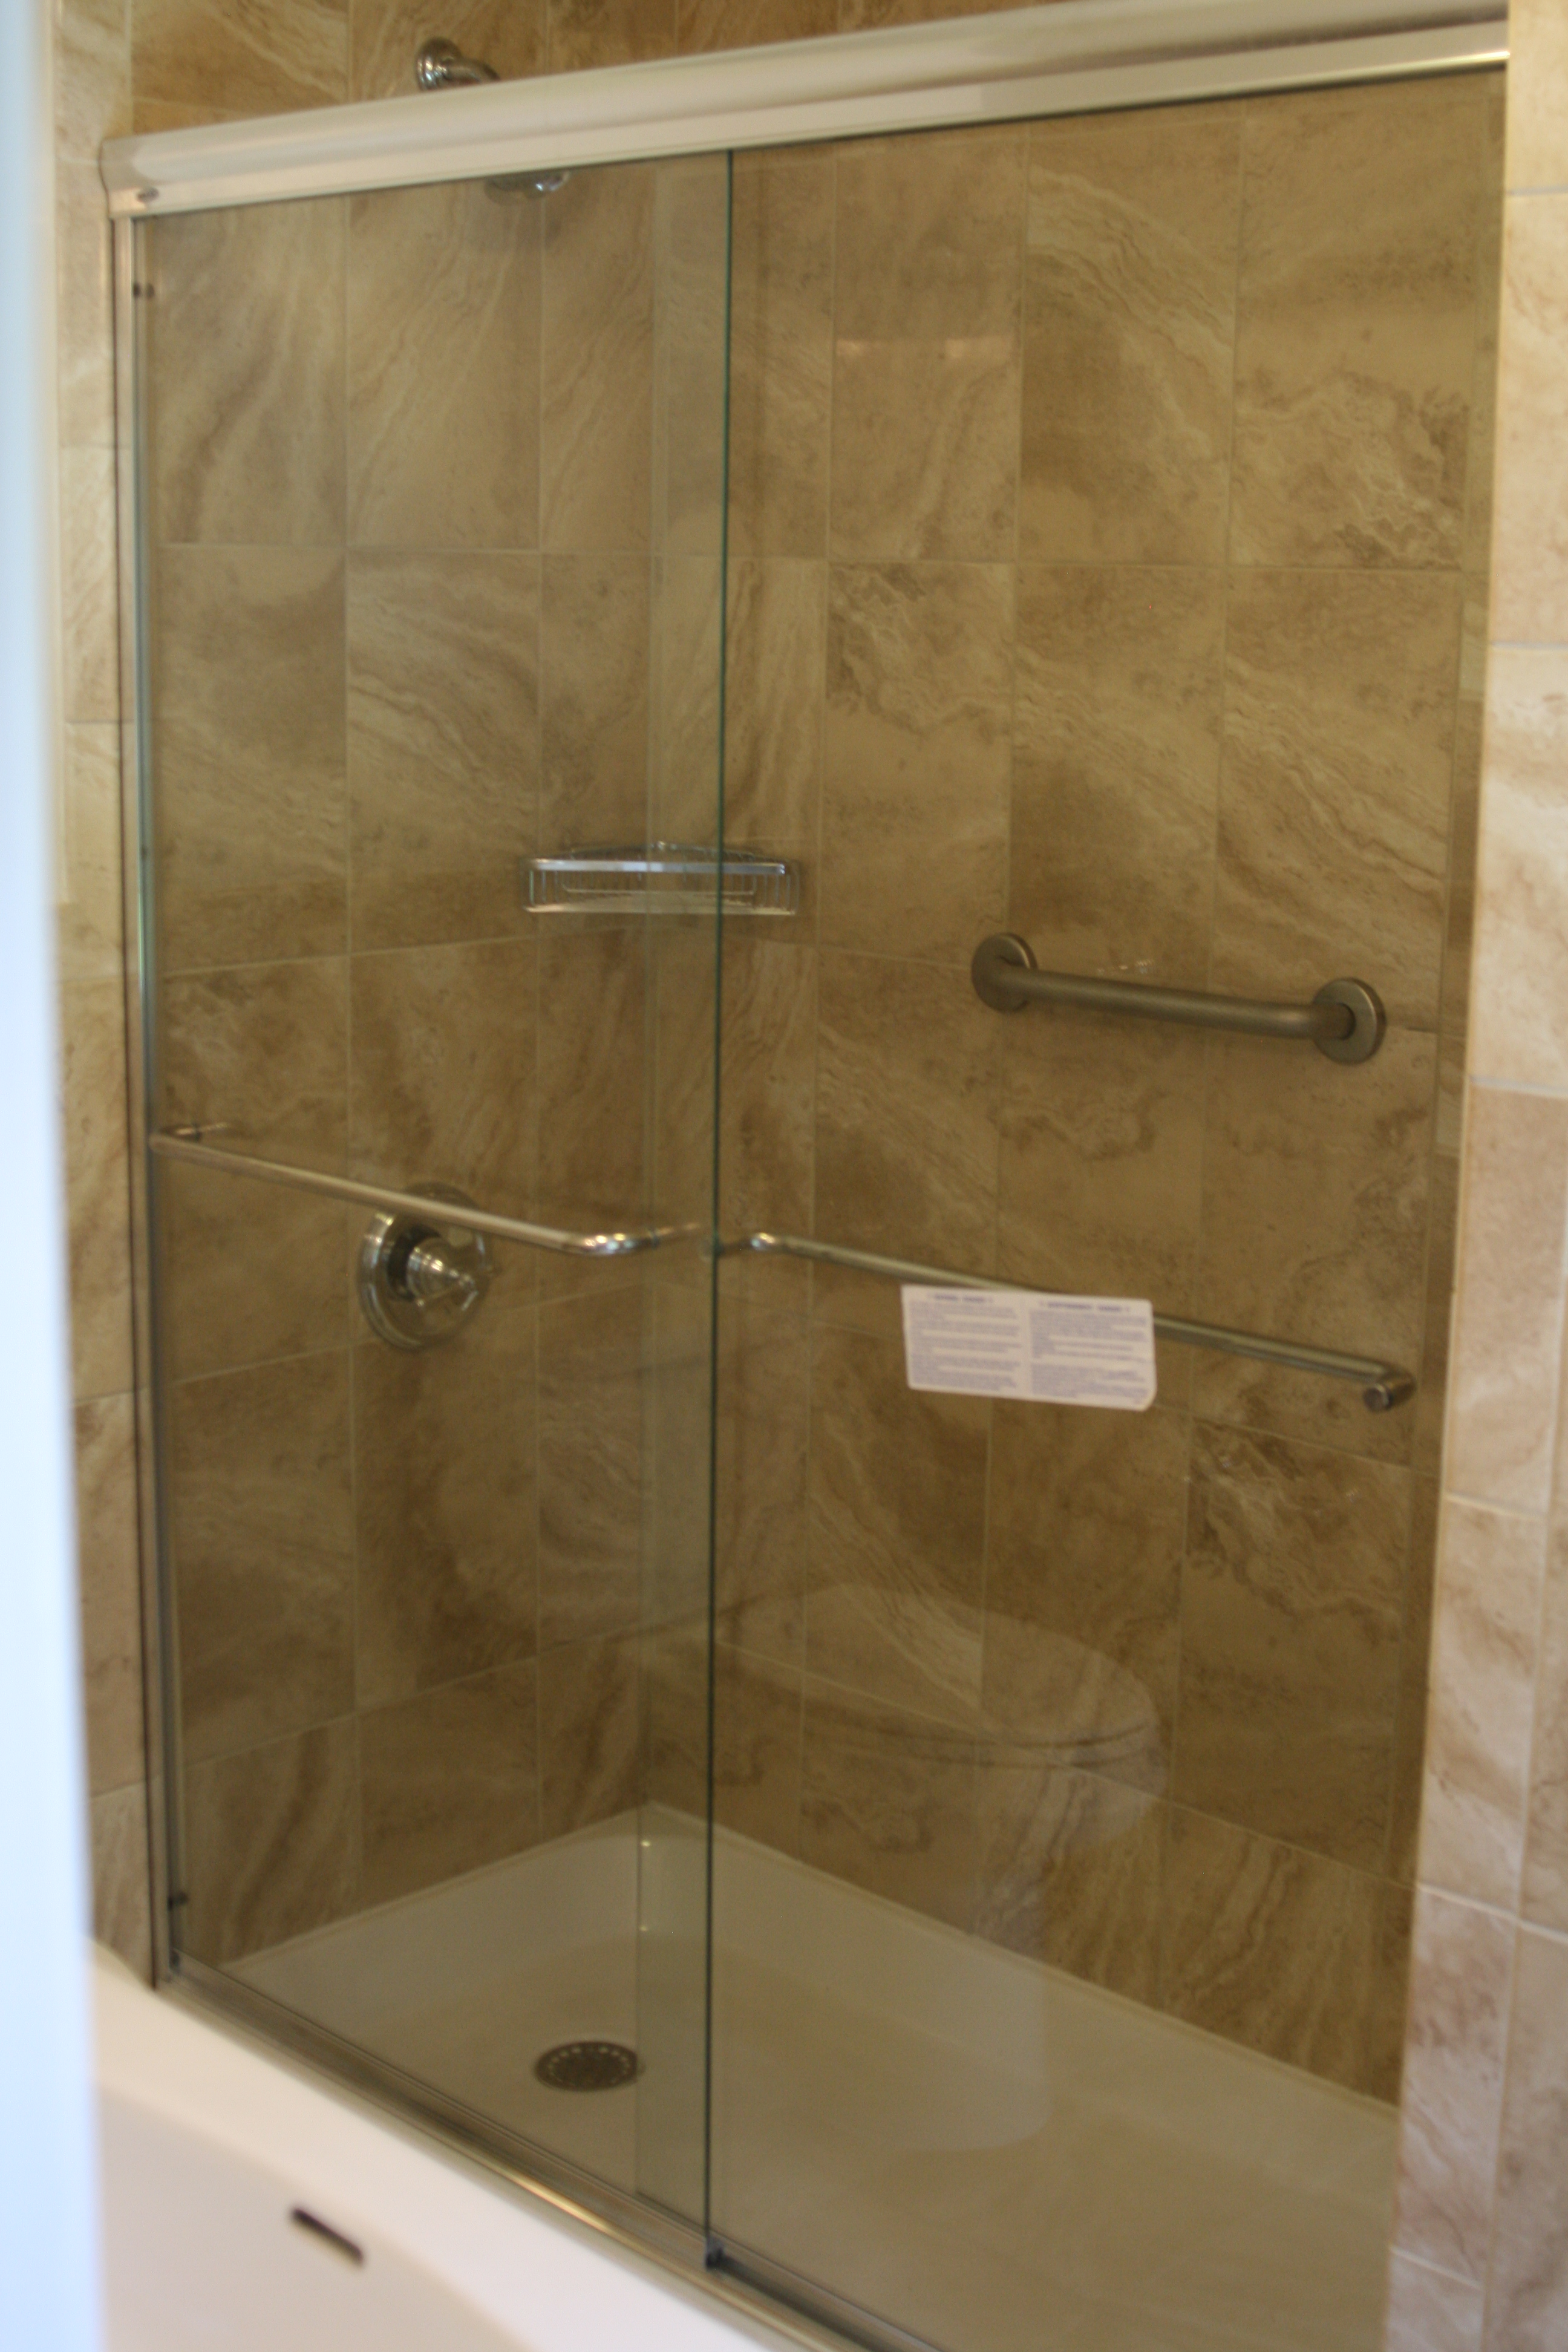 Shower surround with glass doors